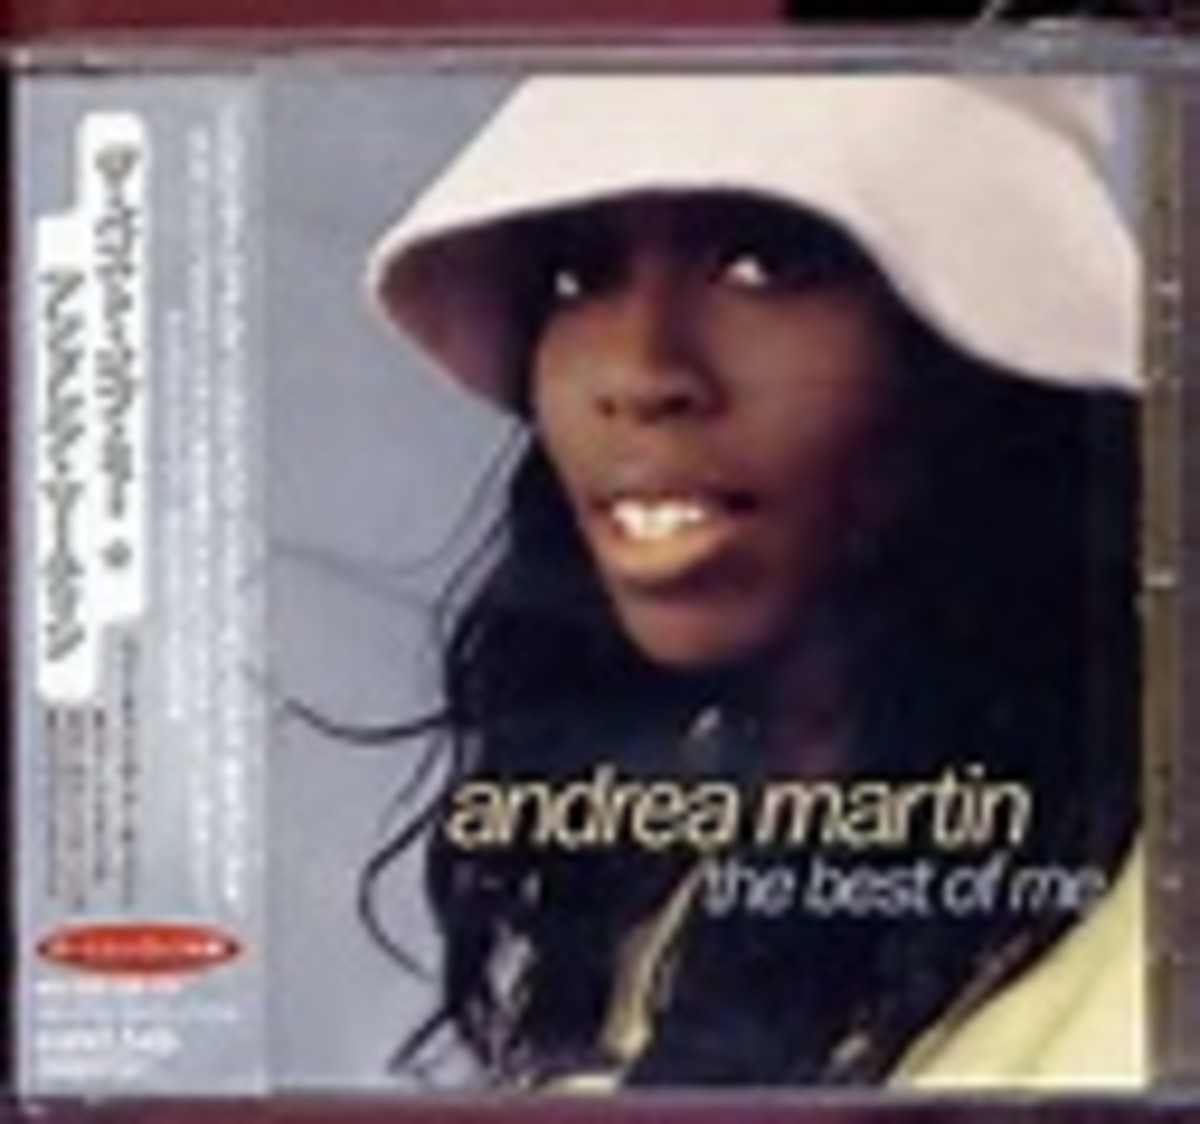 In 1998, songwriter Andrea Martin released her own album called The Best of Me.  The single Let Me Return the Favor peaked at #82 on the Billboard Hot 100.